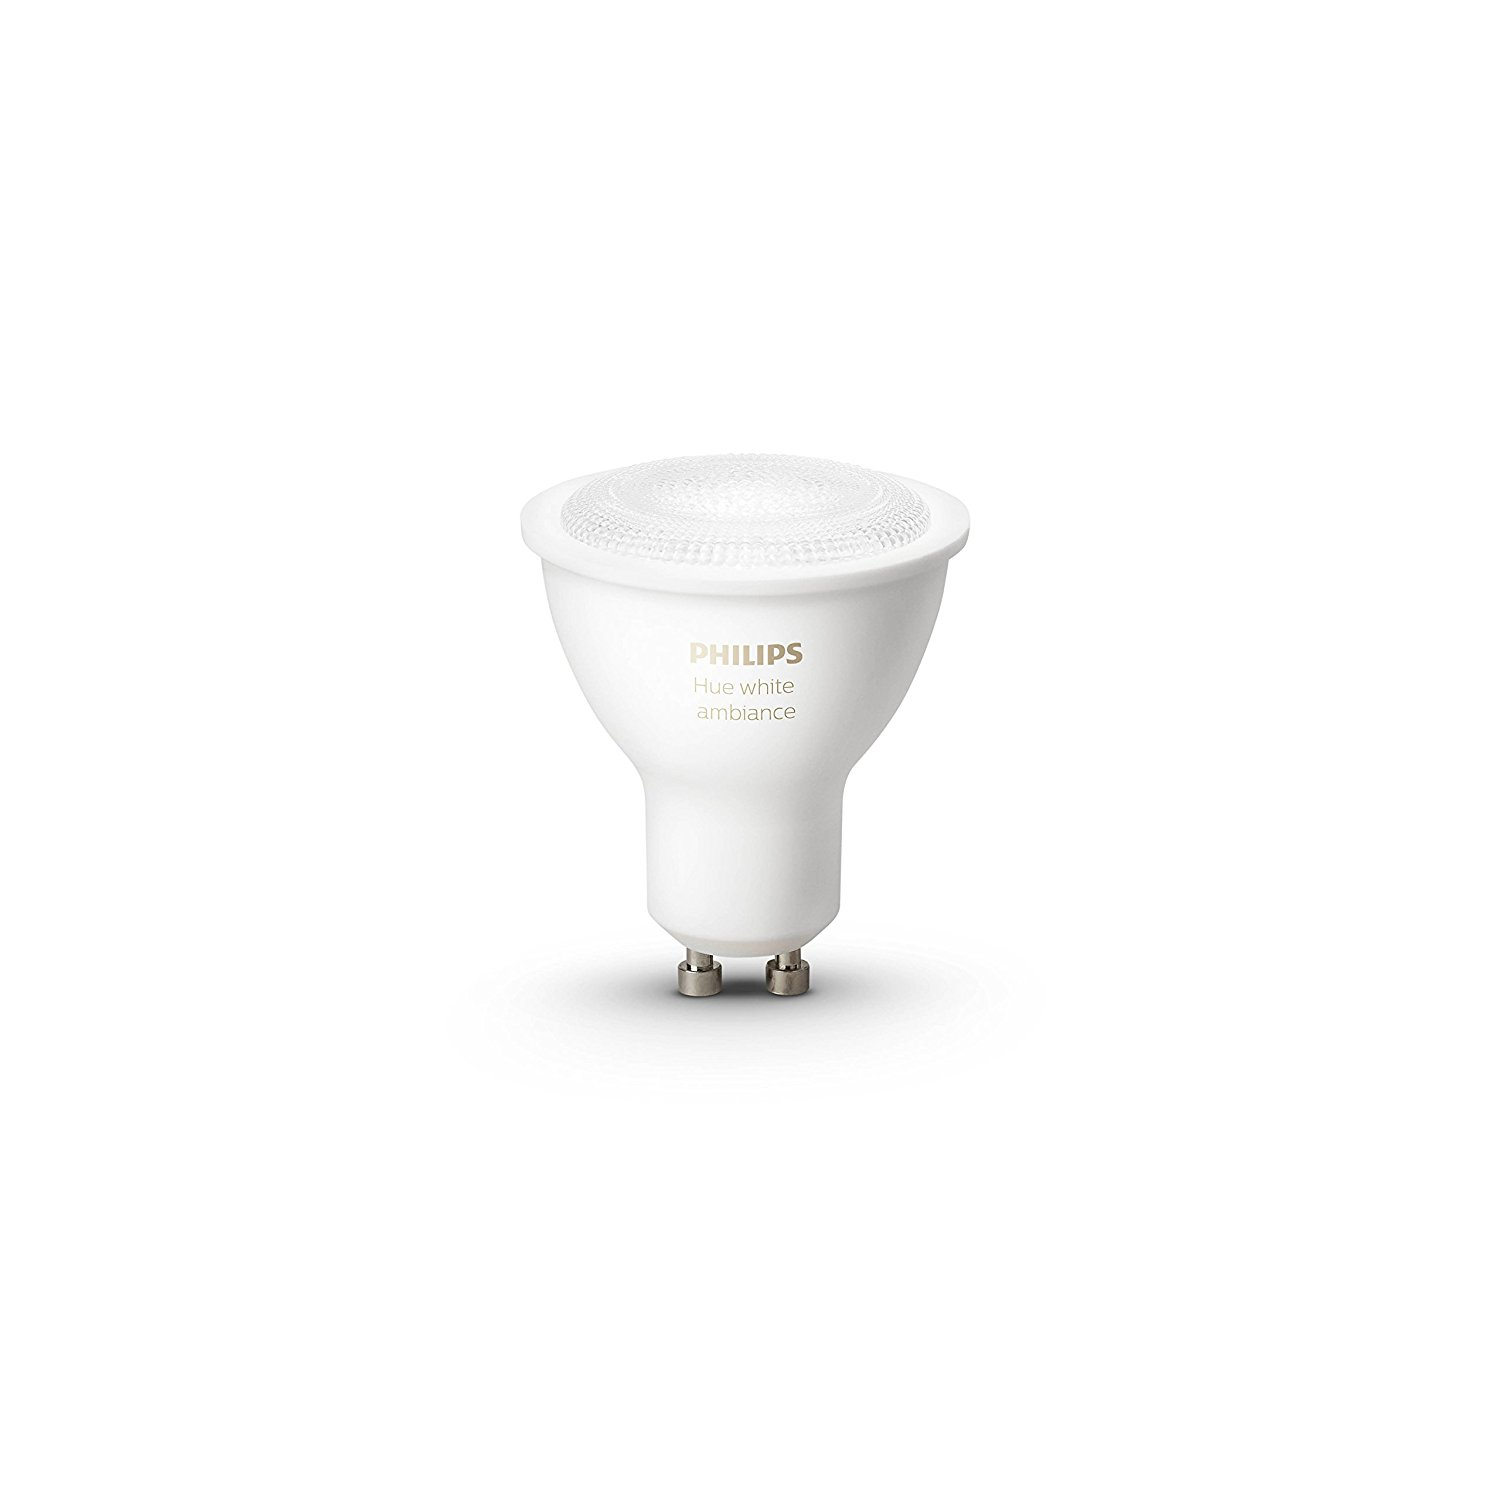 Philips Hue Lampen Gu10.Philips Hue Supported Lights And Devices Iconnecthue